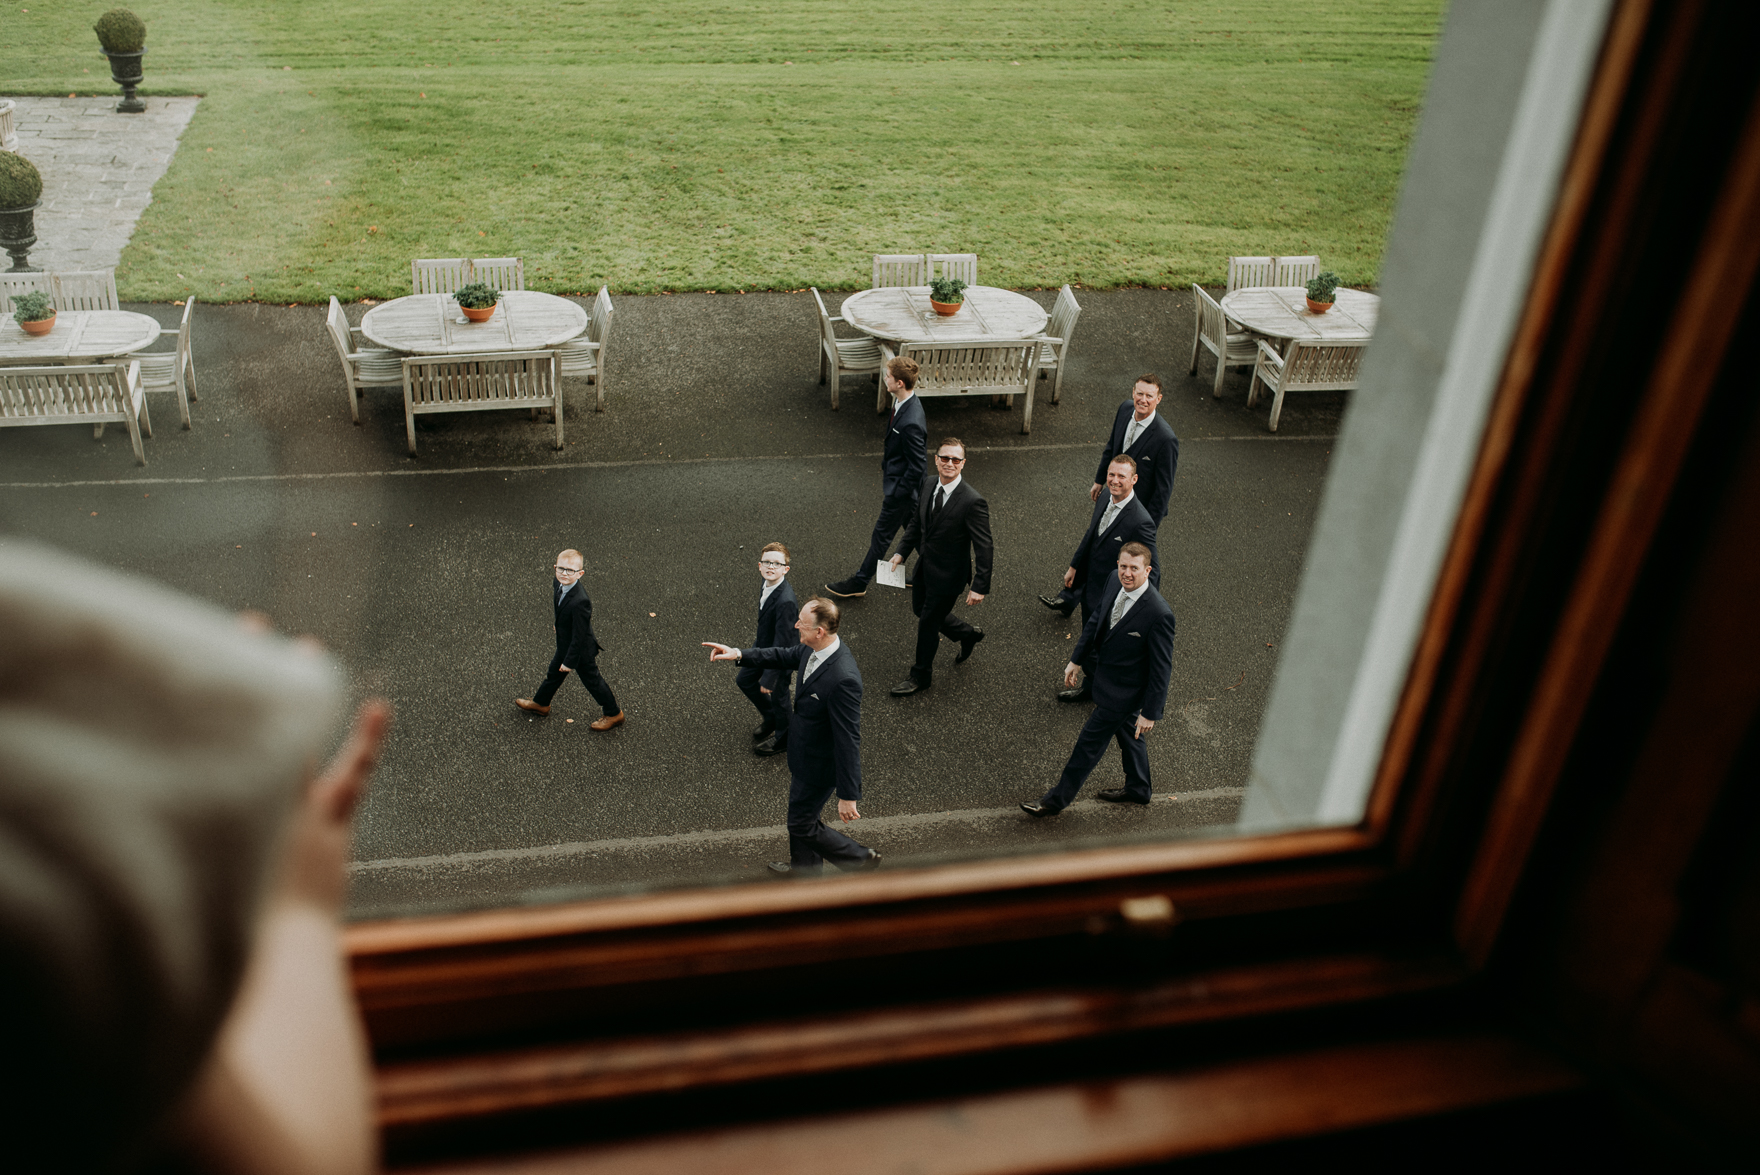 A group of people walking in front of a mirror